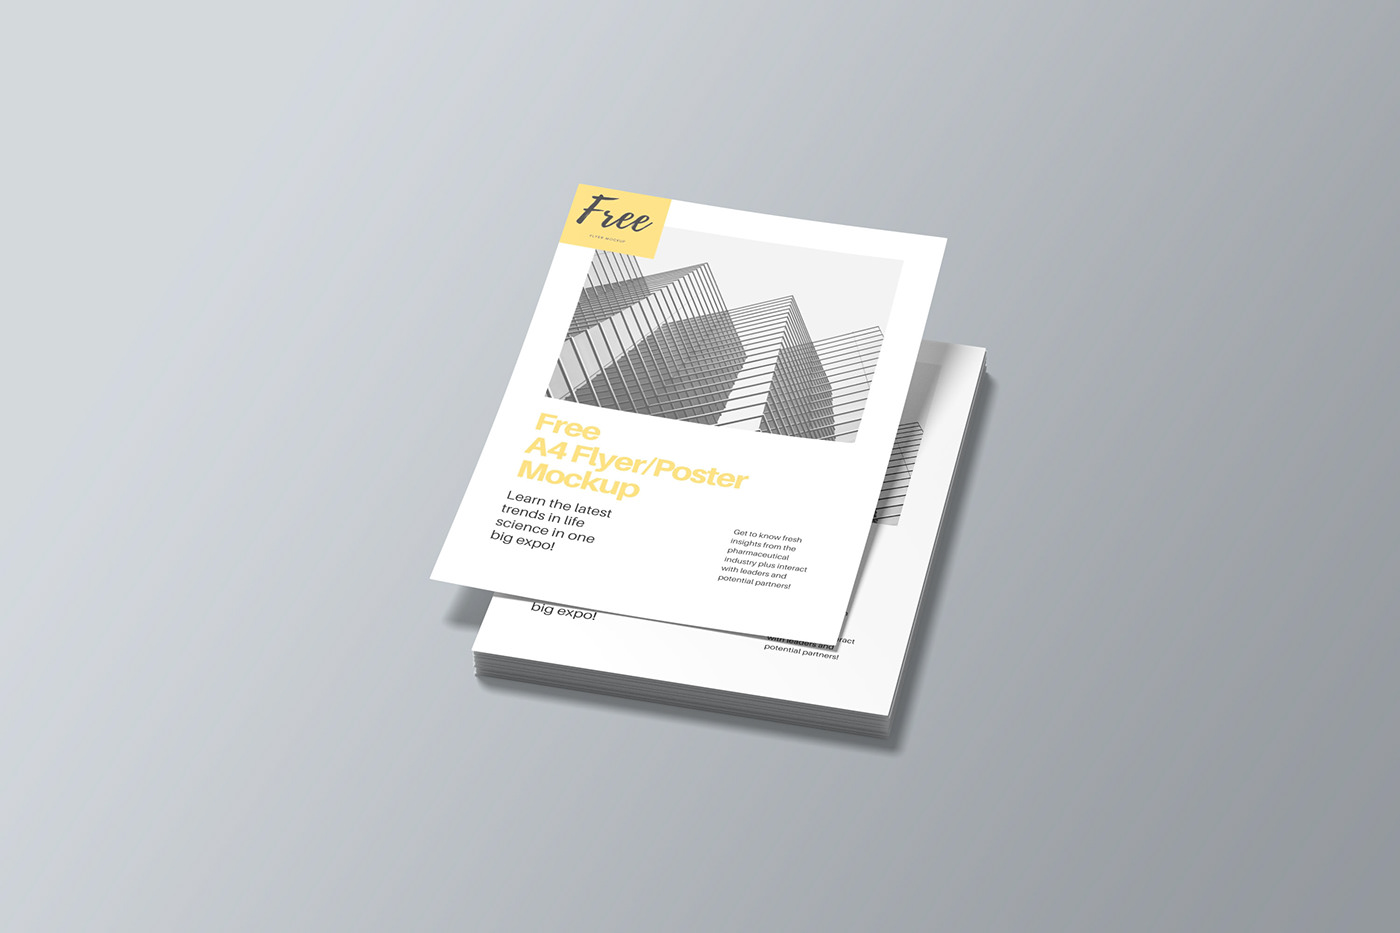 3D a4 design flyer free Mockup photoshop poster template